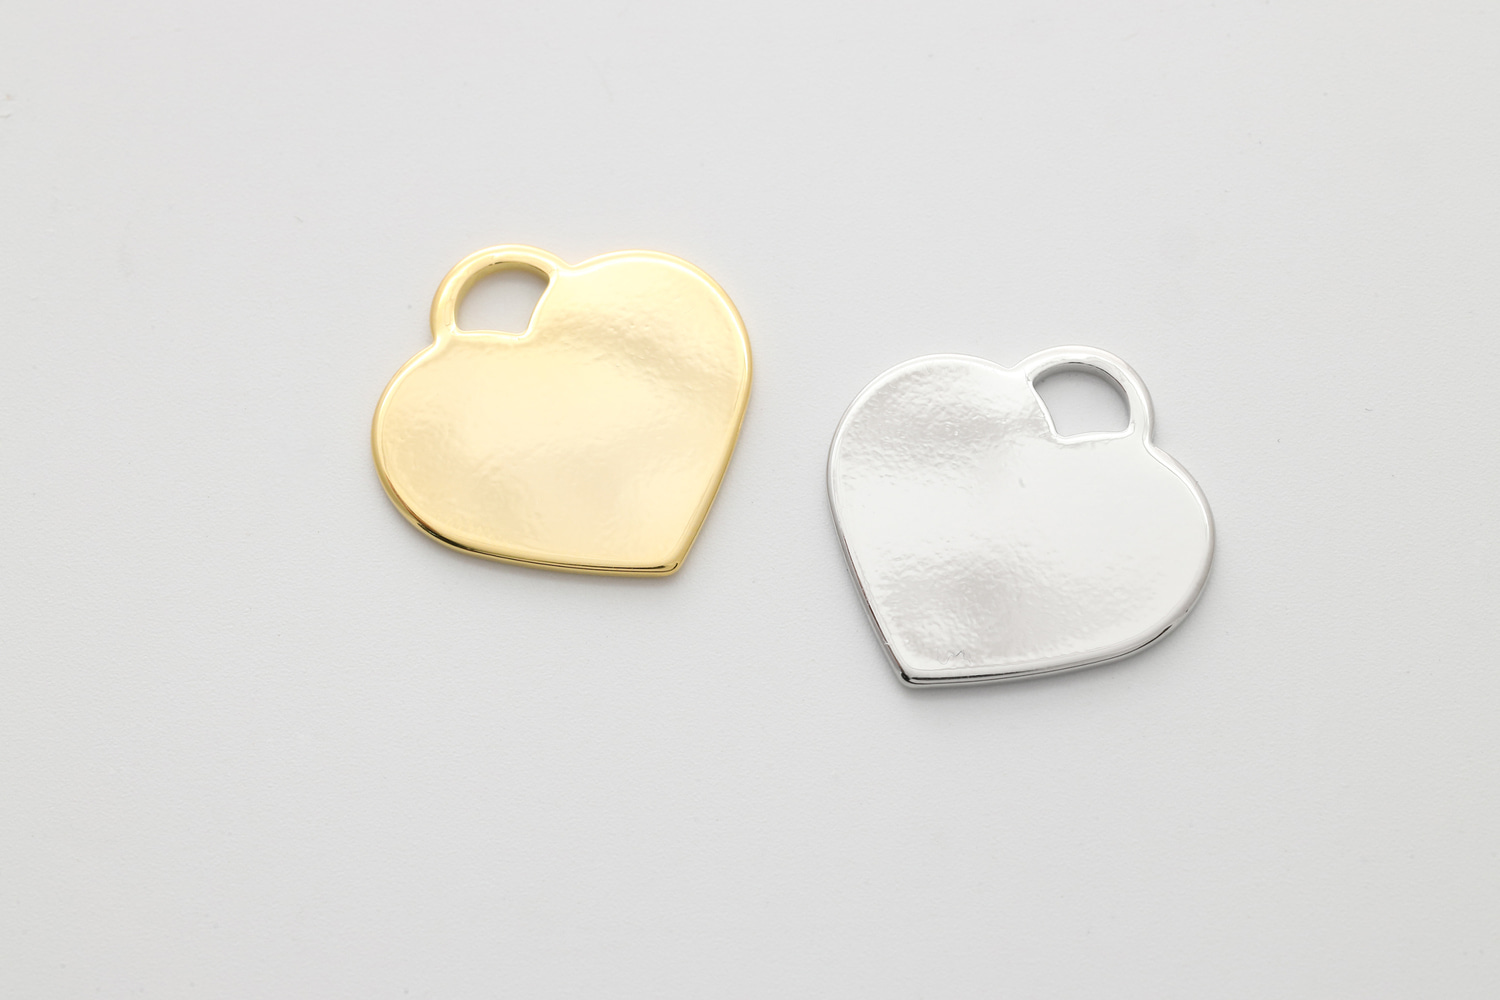 [B24-VC1] Heart pendant, Brass, Nickel free, 23x23mm, 1mm thick, Stamping blanks, Stamping on heart pendant, Jewelry making supplies, 2 pcs (B24-G1, B24-R1)